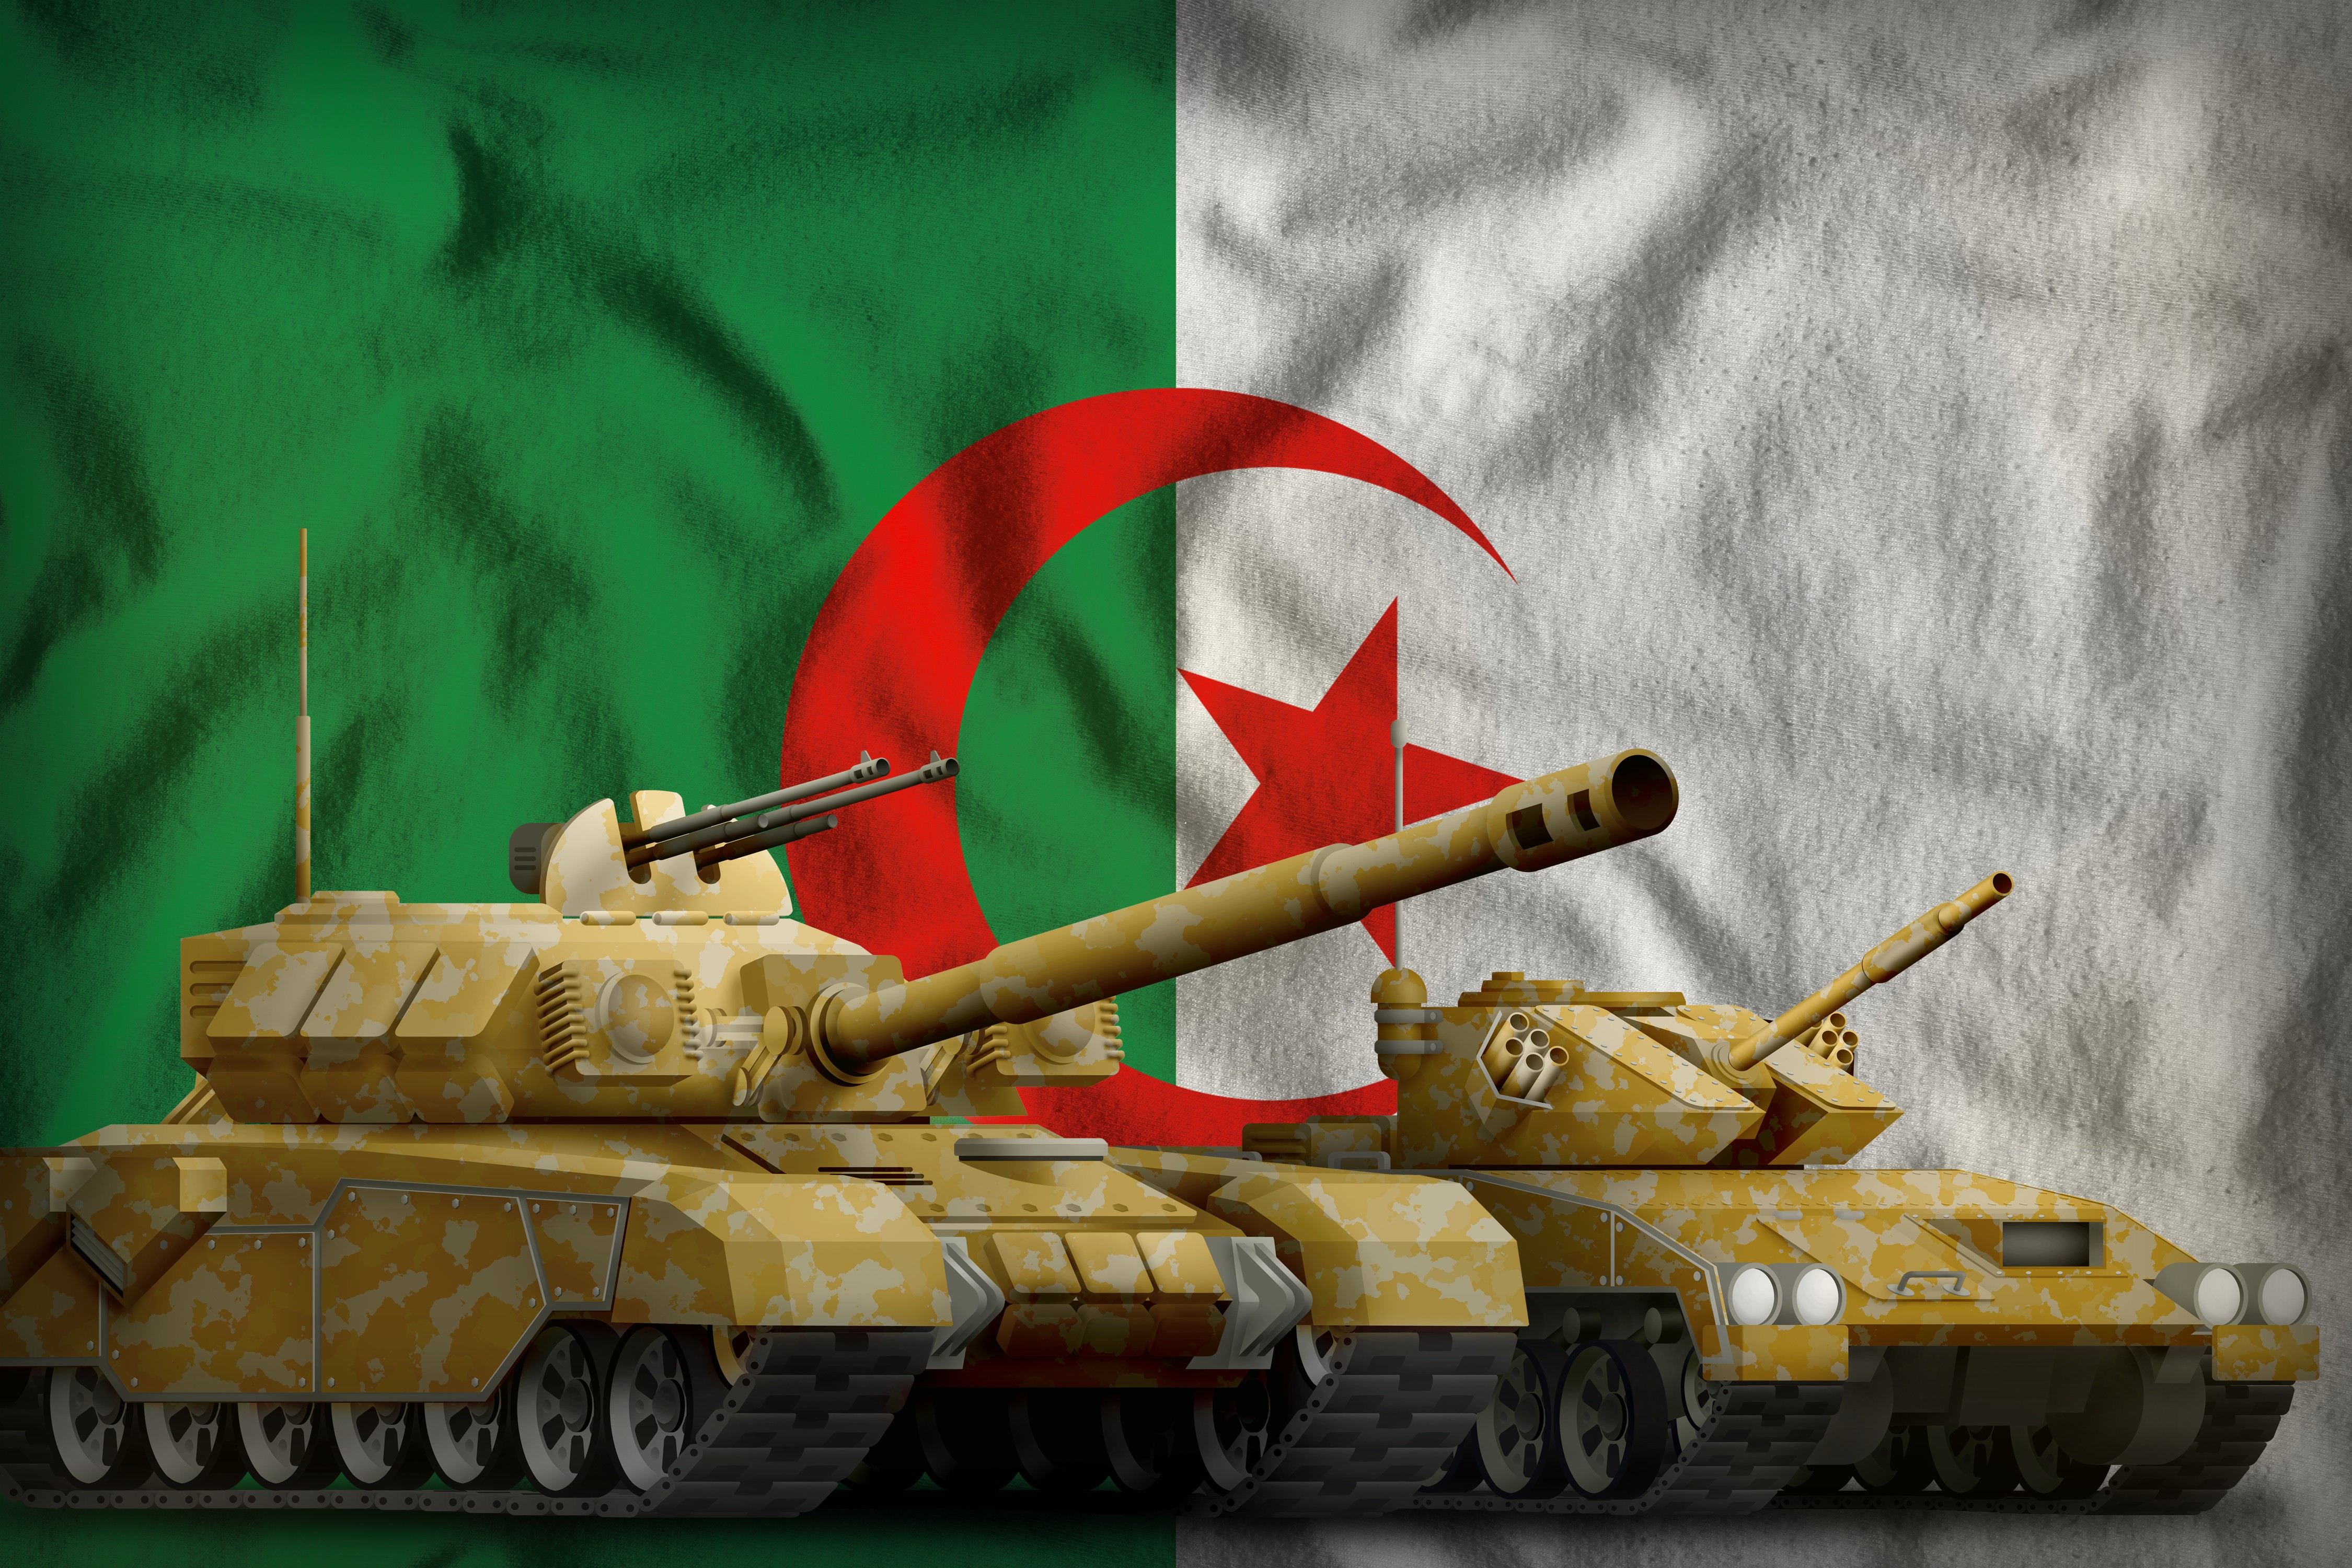 Will the army allow Algeria's push for democracy: 5 Geopolitical Effects You Need to Know